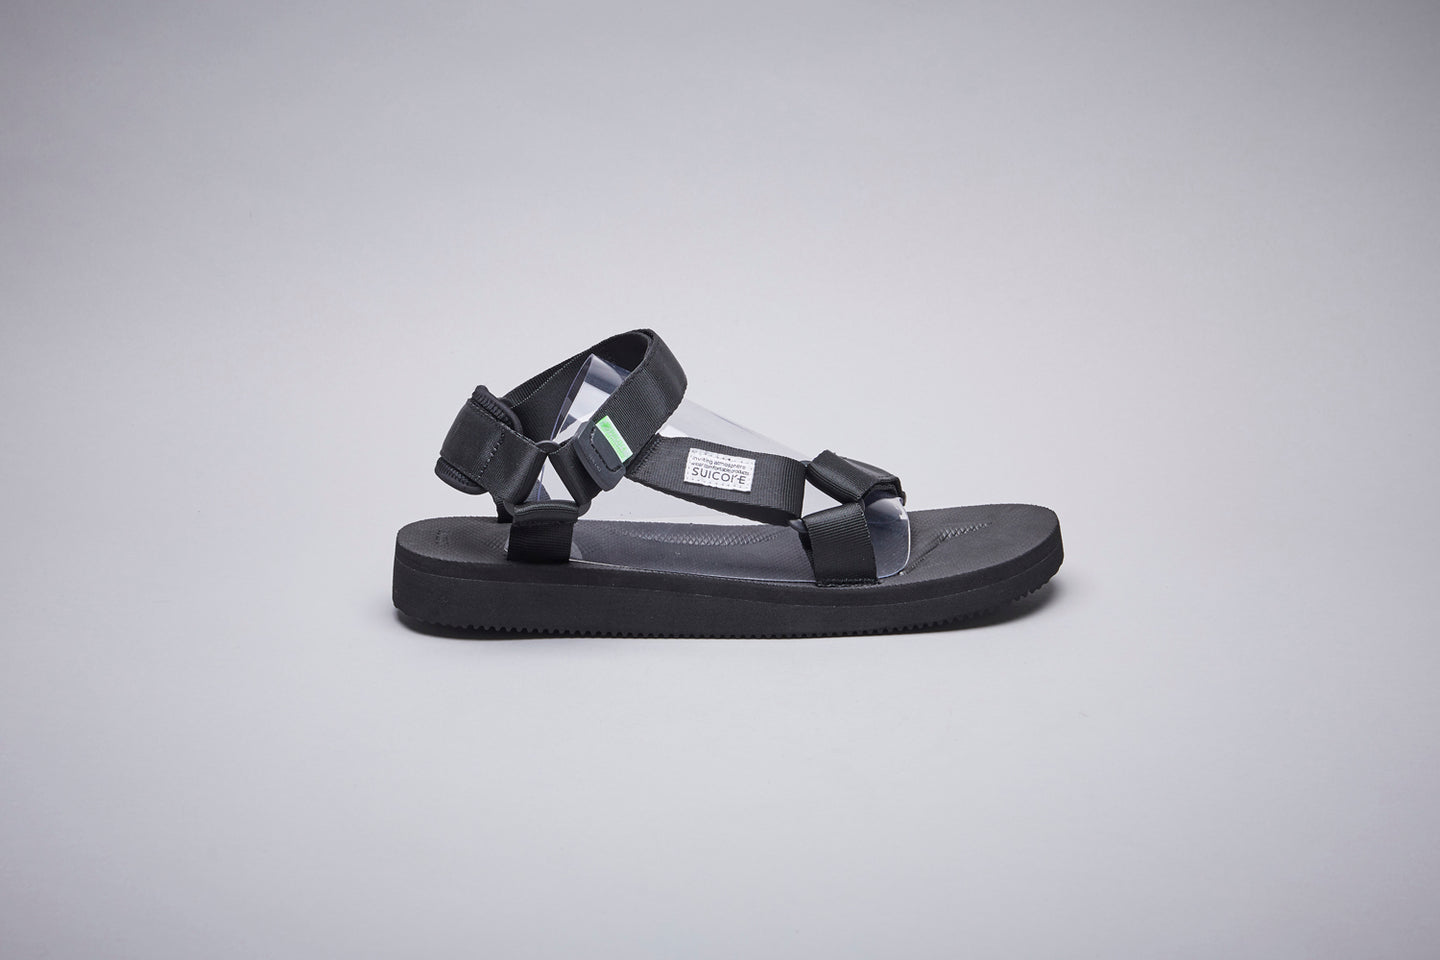 SUICOKE-Sandals-DEPA-CAB - Black-OG-022CAB Official Webstore Spring 2021